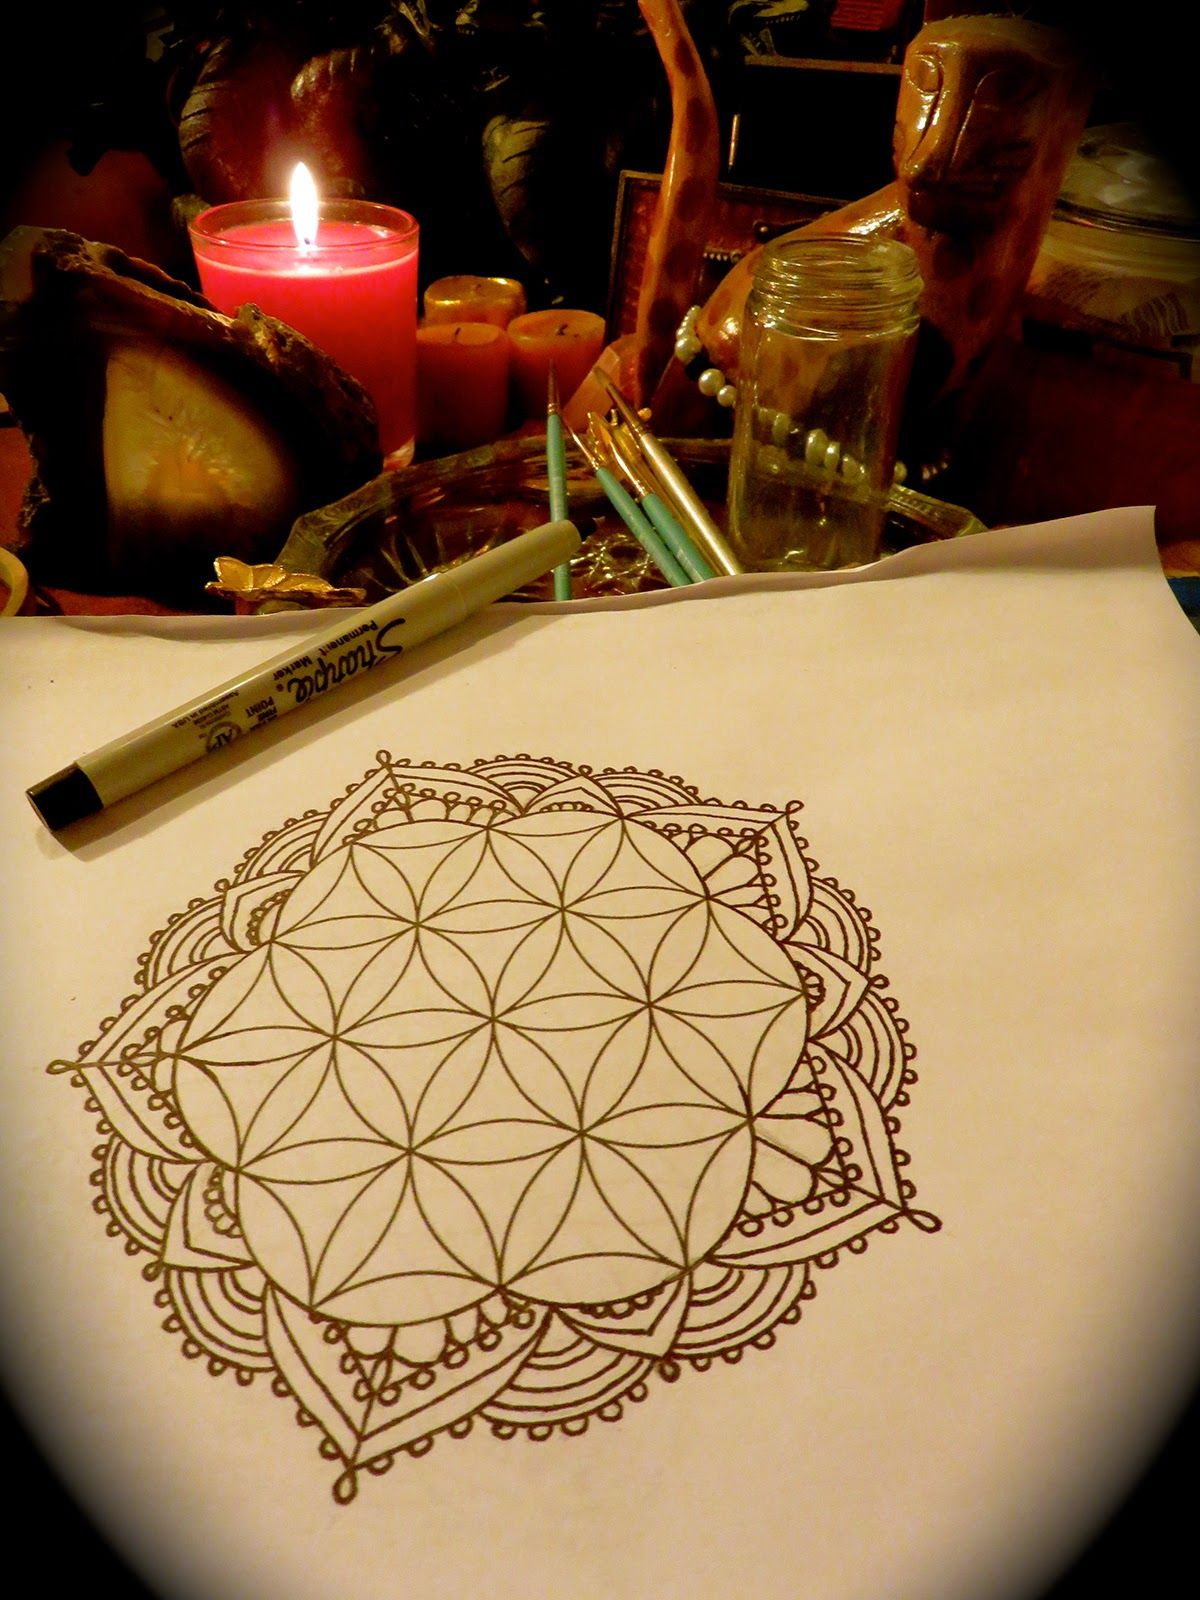 Flower of life tattoo google search inspiration pinterest flower of life tattoo google search thecheapjerseys Gallery